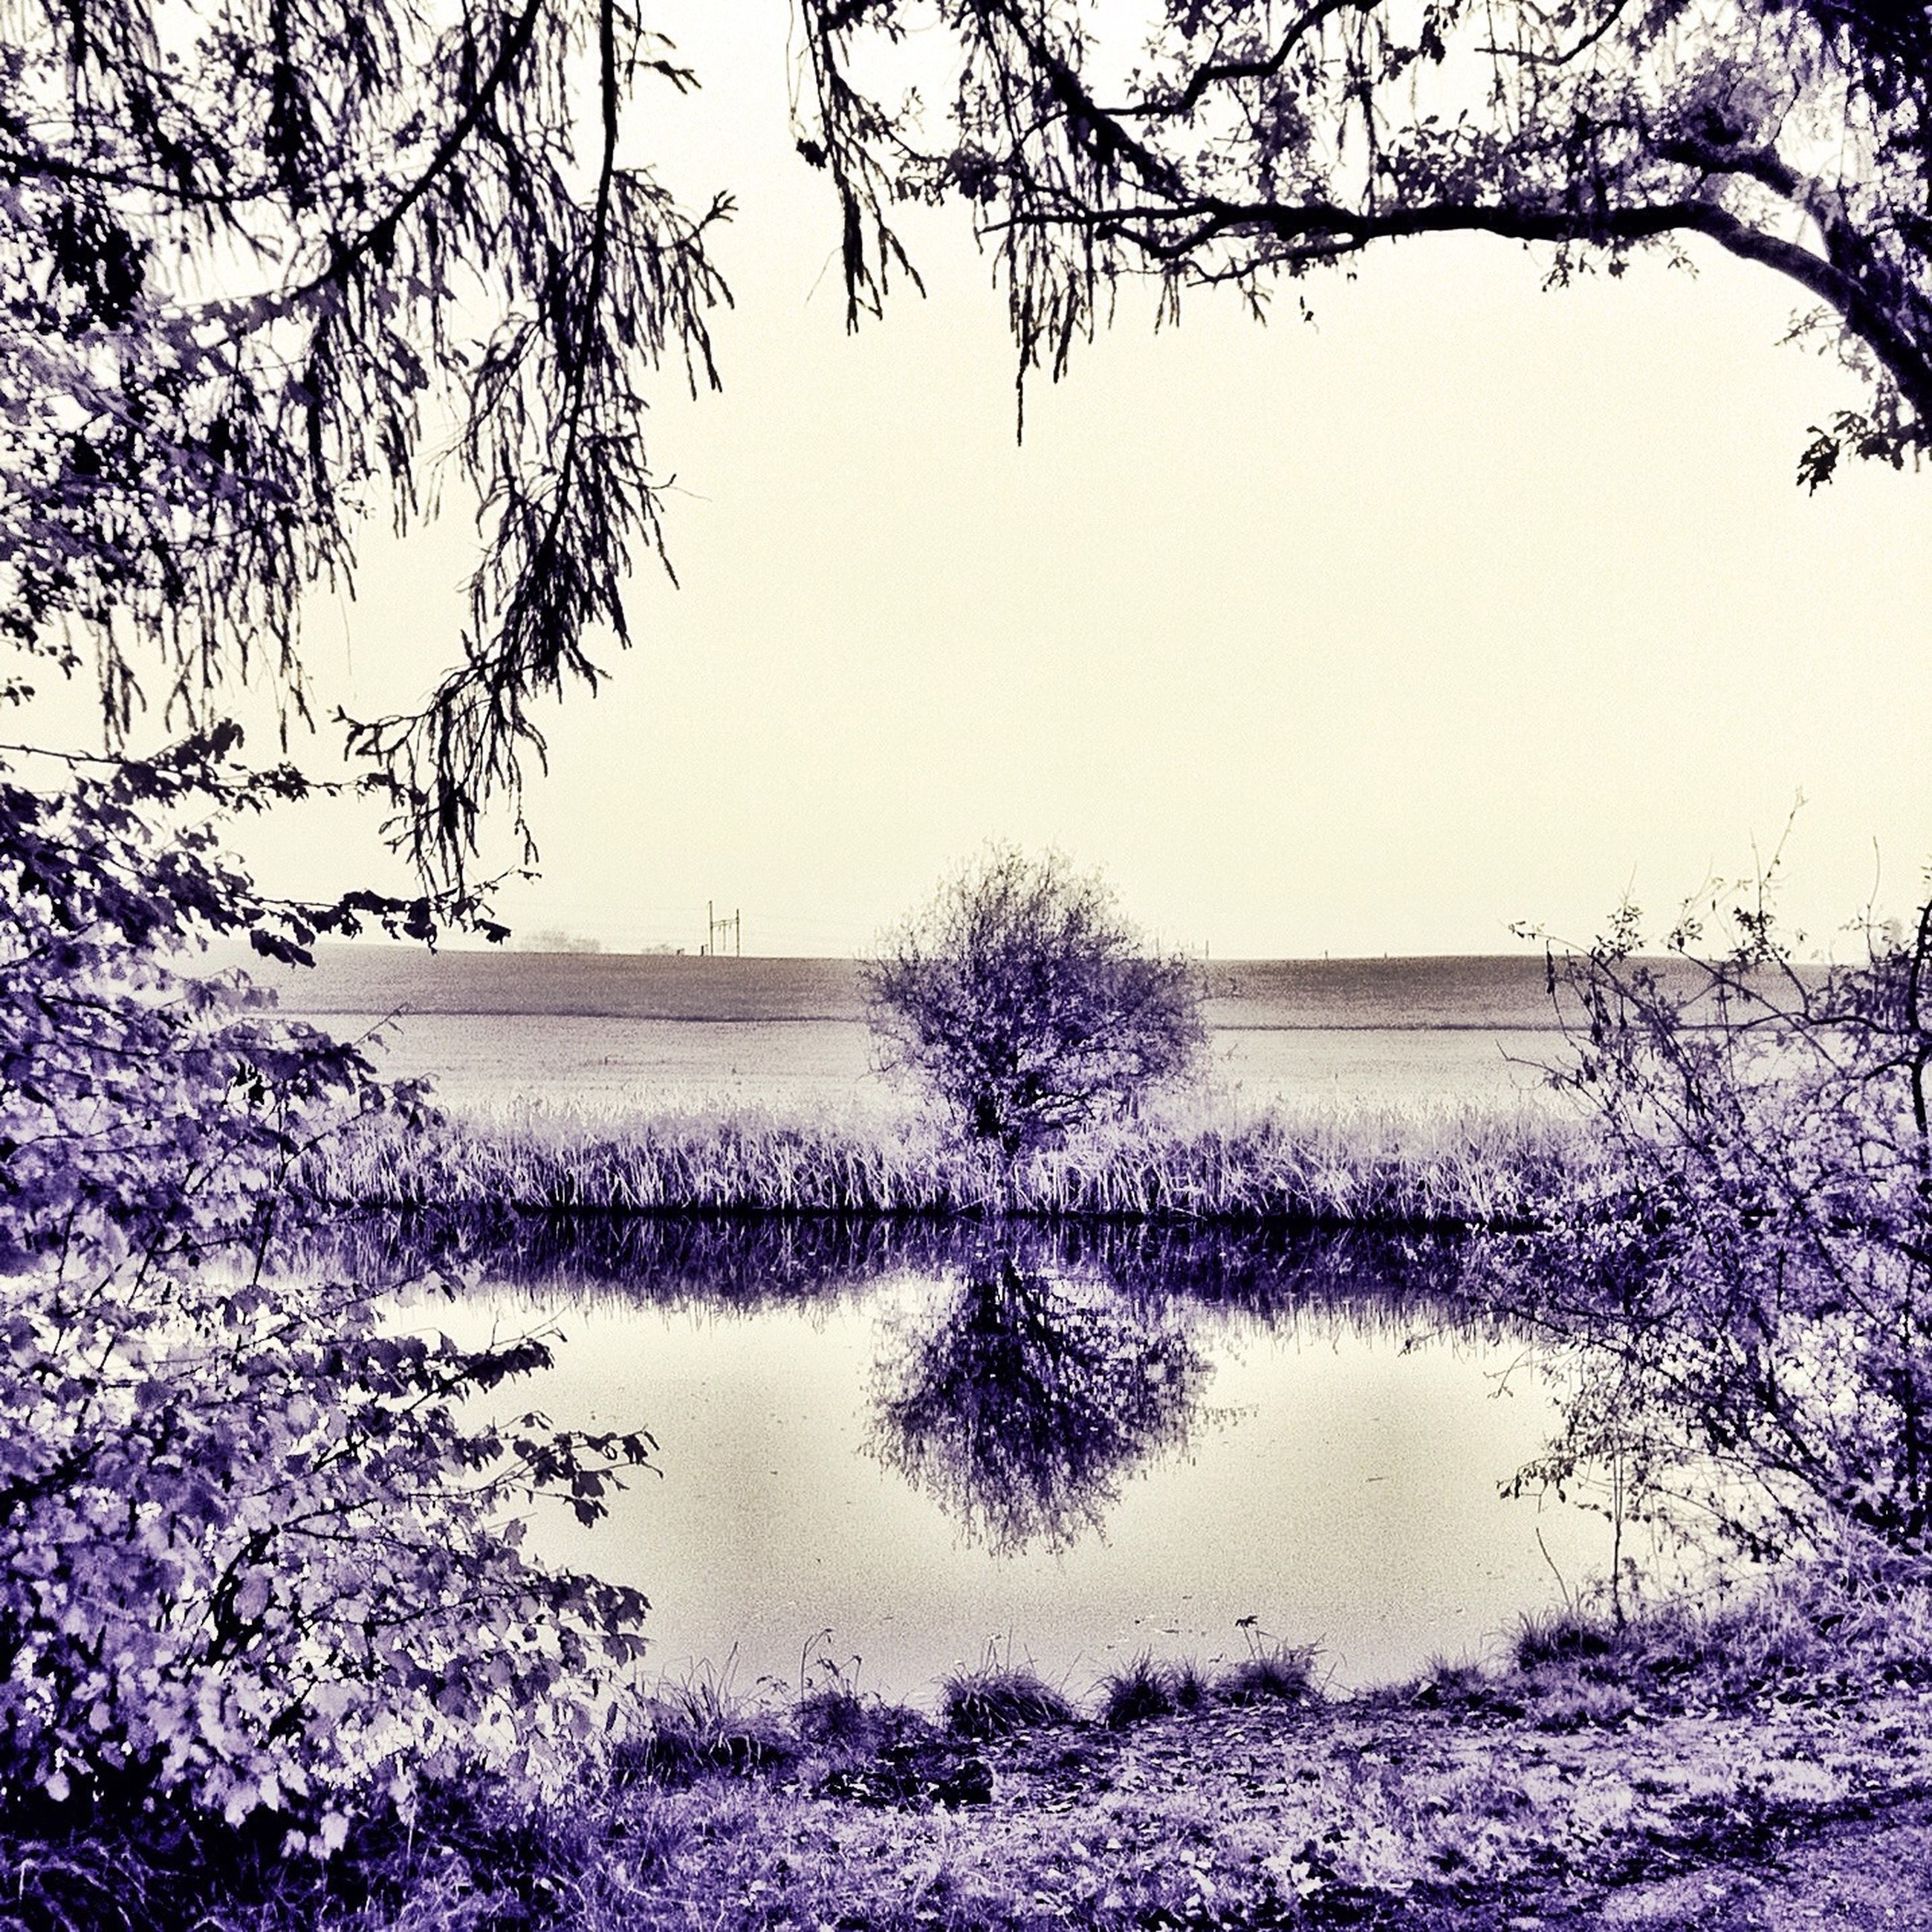 water, clear sky, branch, tranquil scene, tranquility, beauty in nature, tree, nature, scenics, sea, bare tree, growth, lake, plant, horizon over water, copy space, idyllic, outdoors, flower, sky